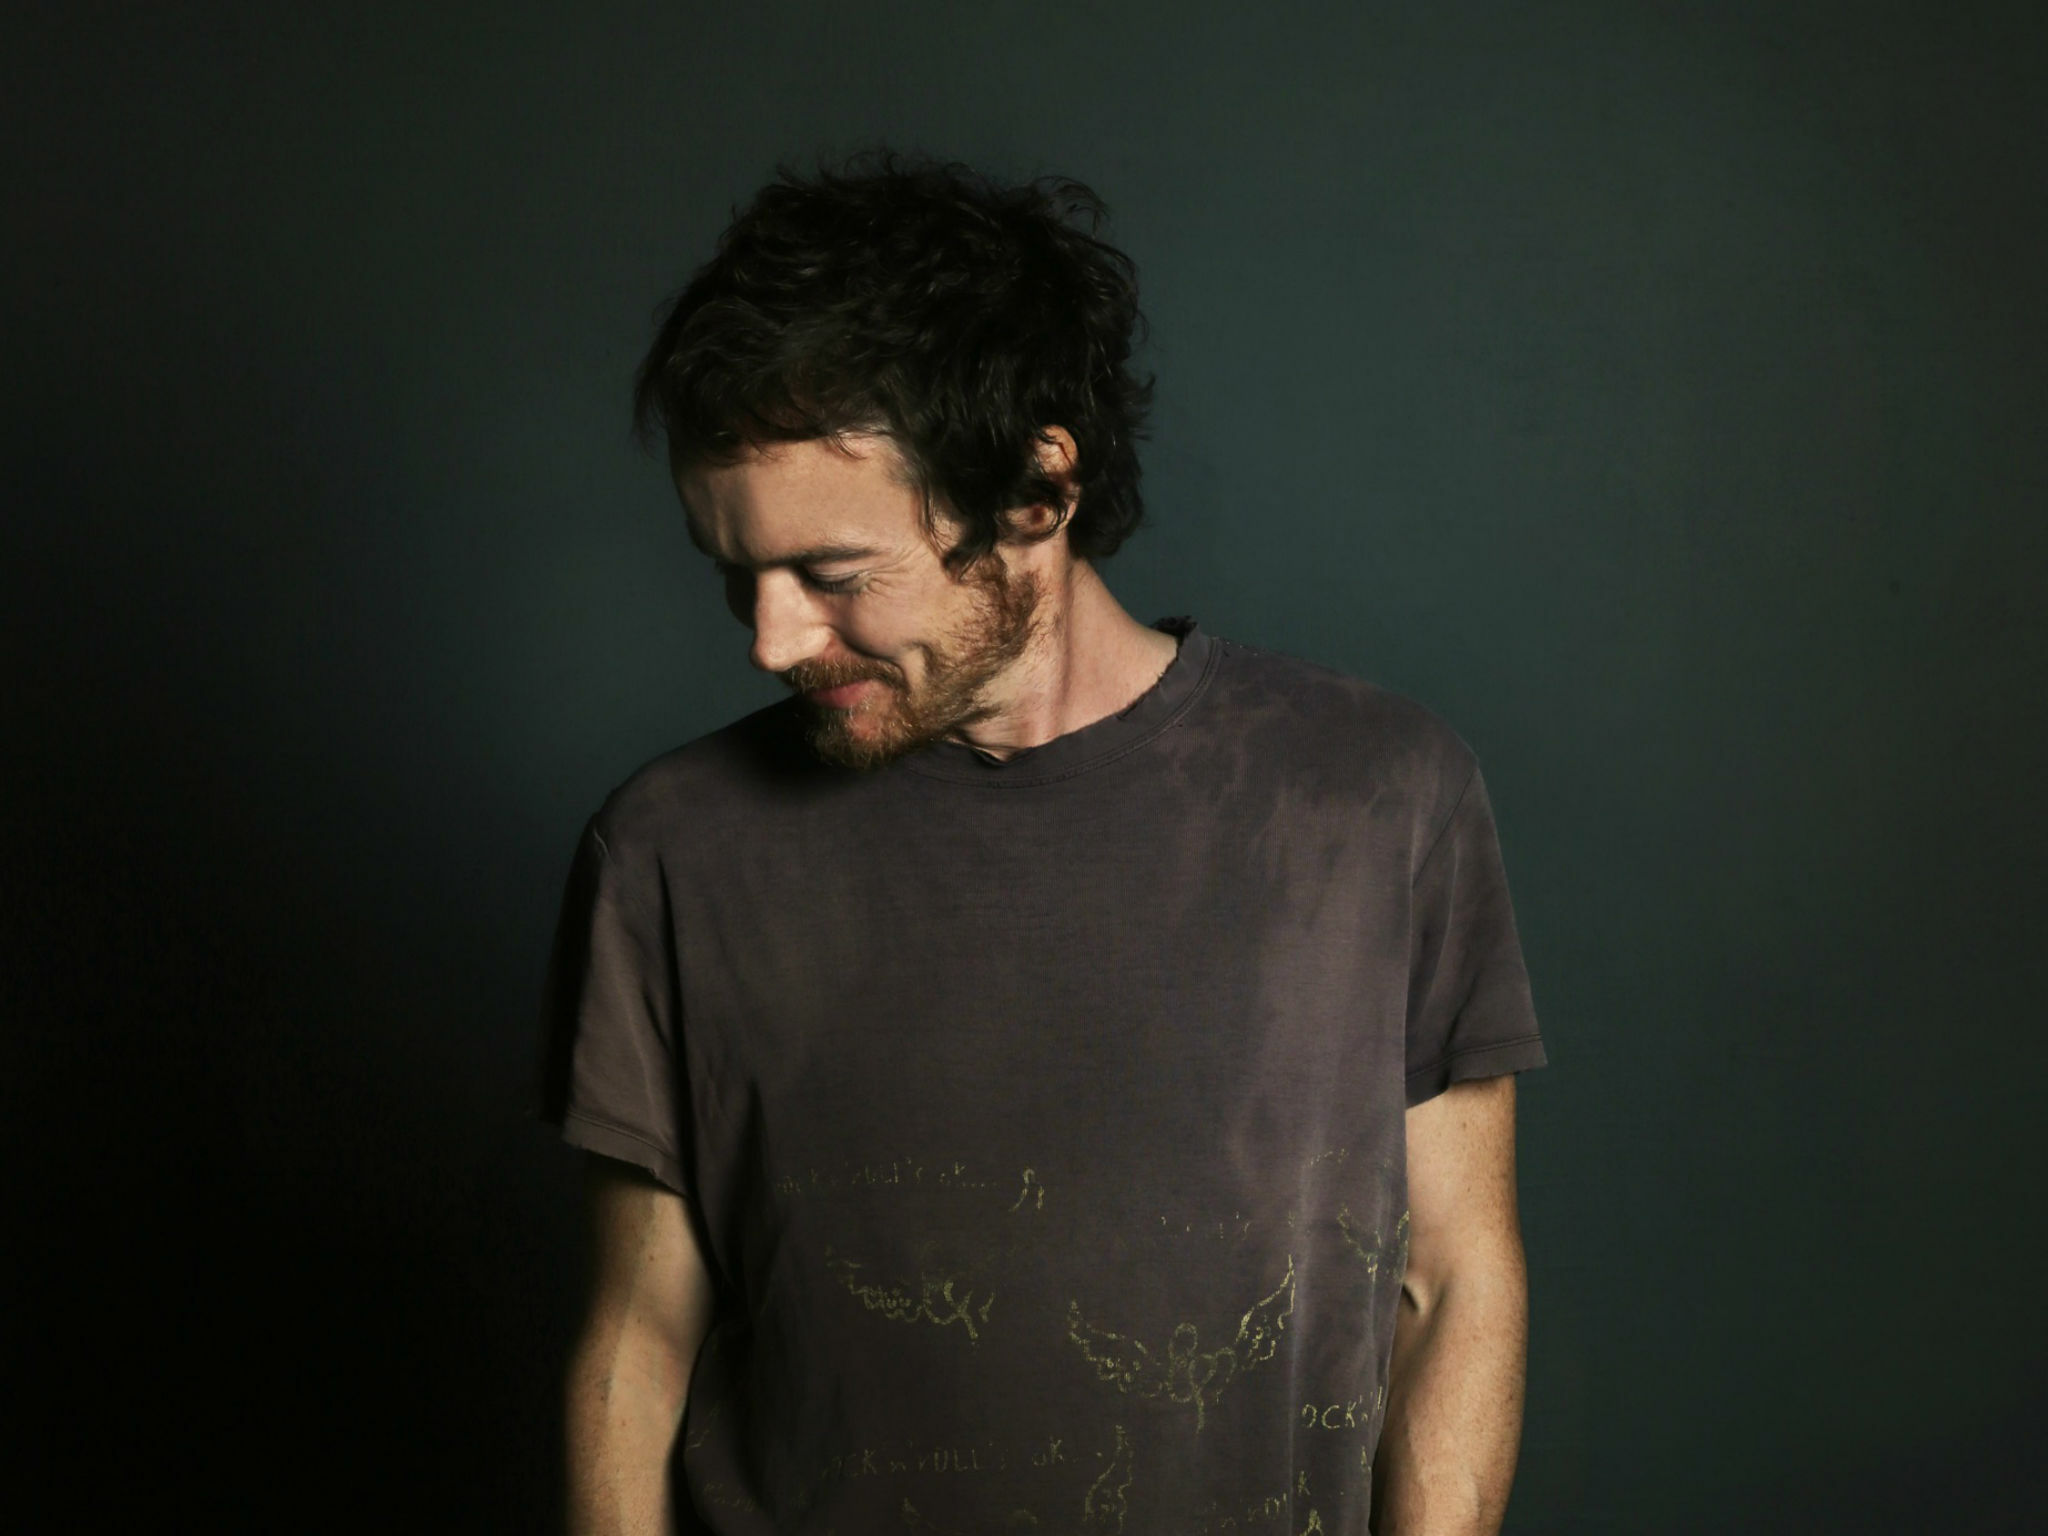 Musician Damien Rice looking down, to the right